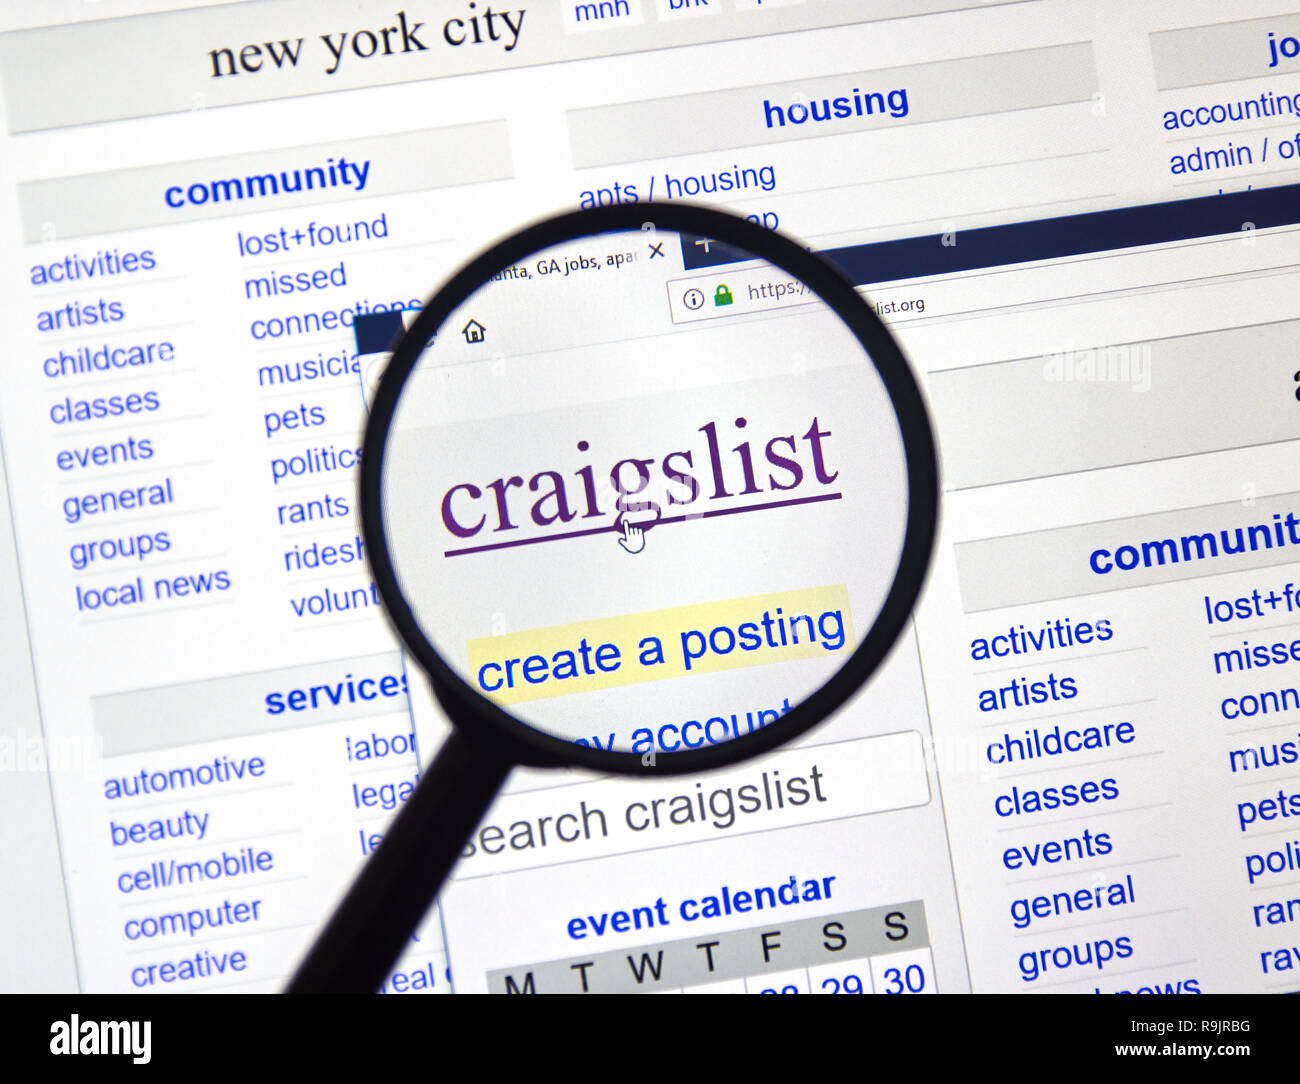 Craigslist Logo Stock Photos & Craigslist Logo Stock Images - Alamy